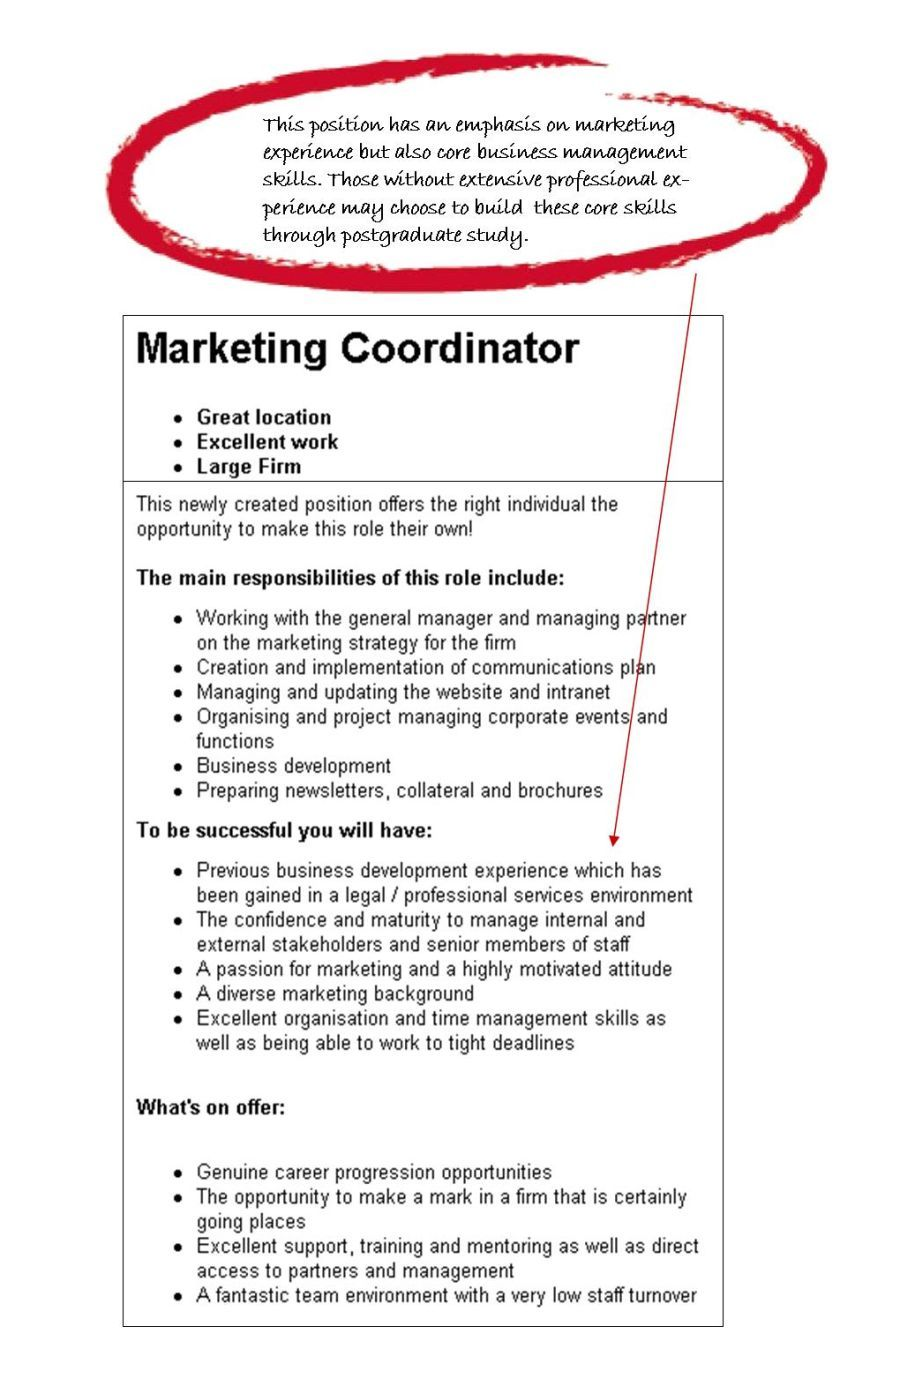 A Good Resume Objective Objectives For Resume  Resume  Pinterest  Resume Objective And